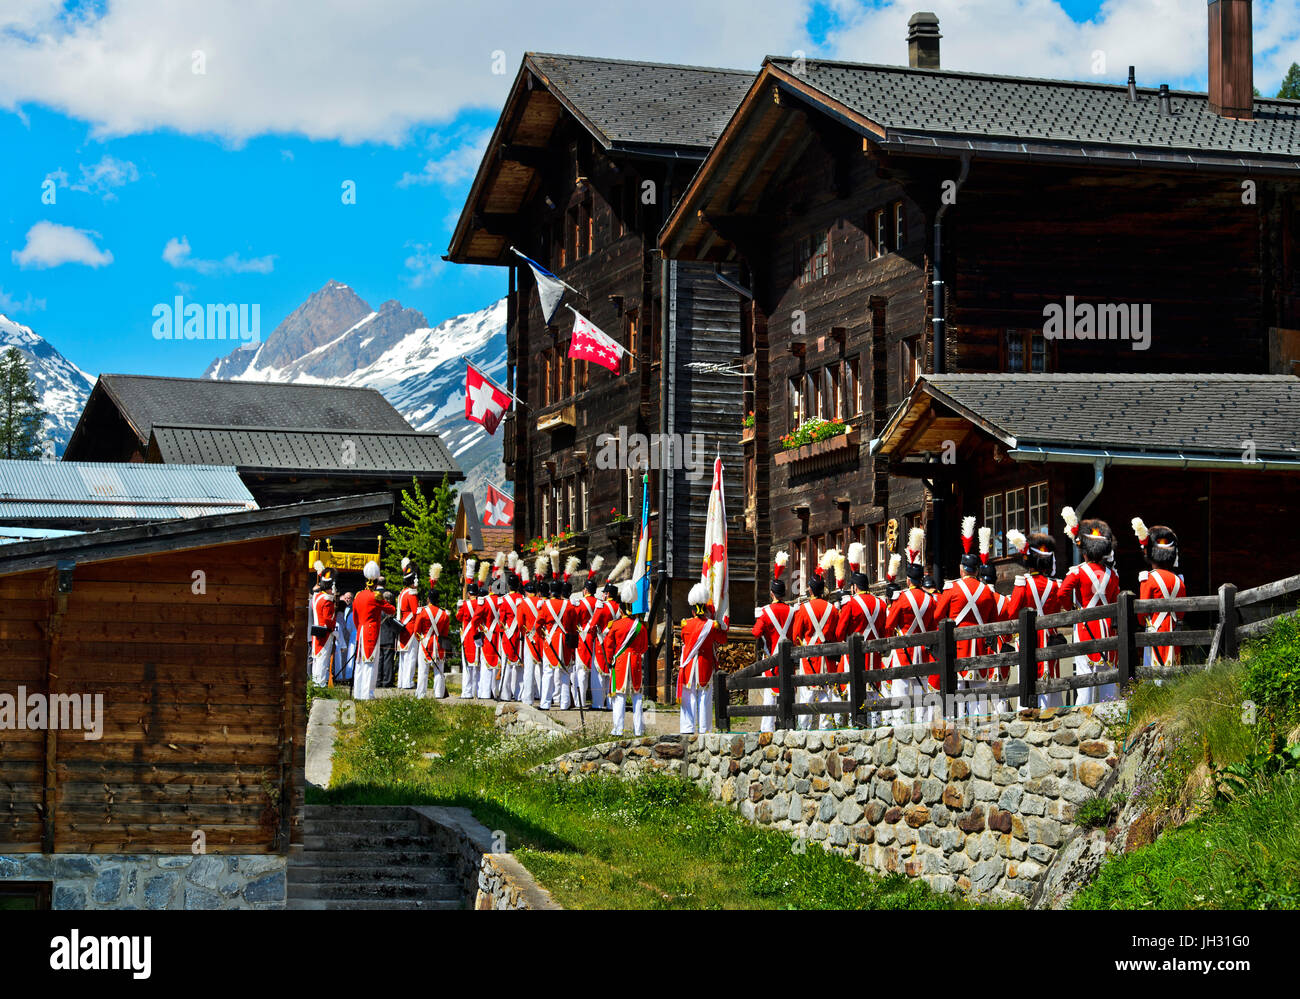 Grenadiers of Our Lord at the Corpus Christi procession, Blatten, Lötschental, Valais, Switzerland - Stock Image